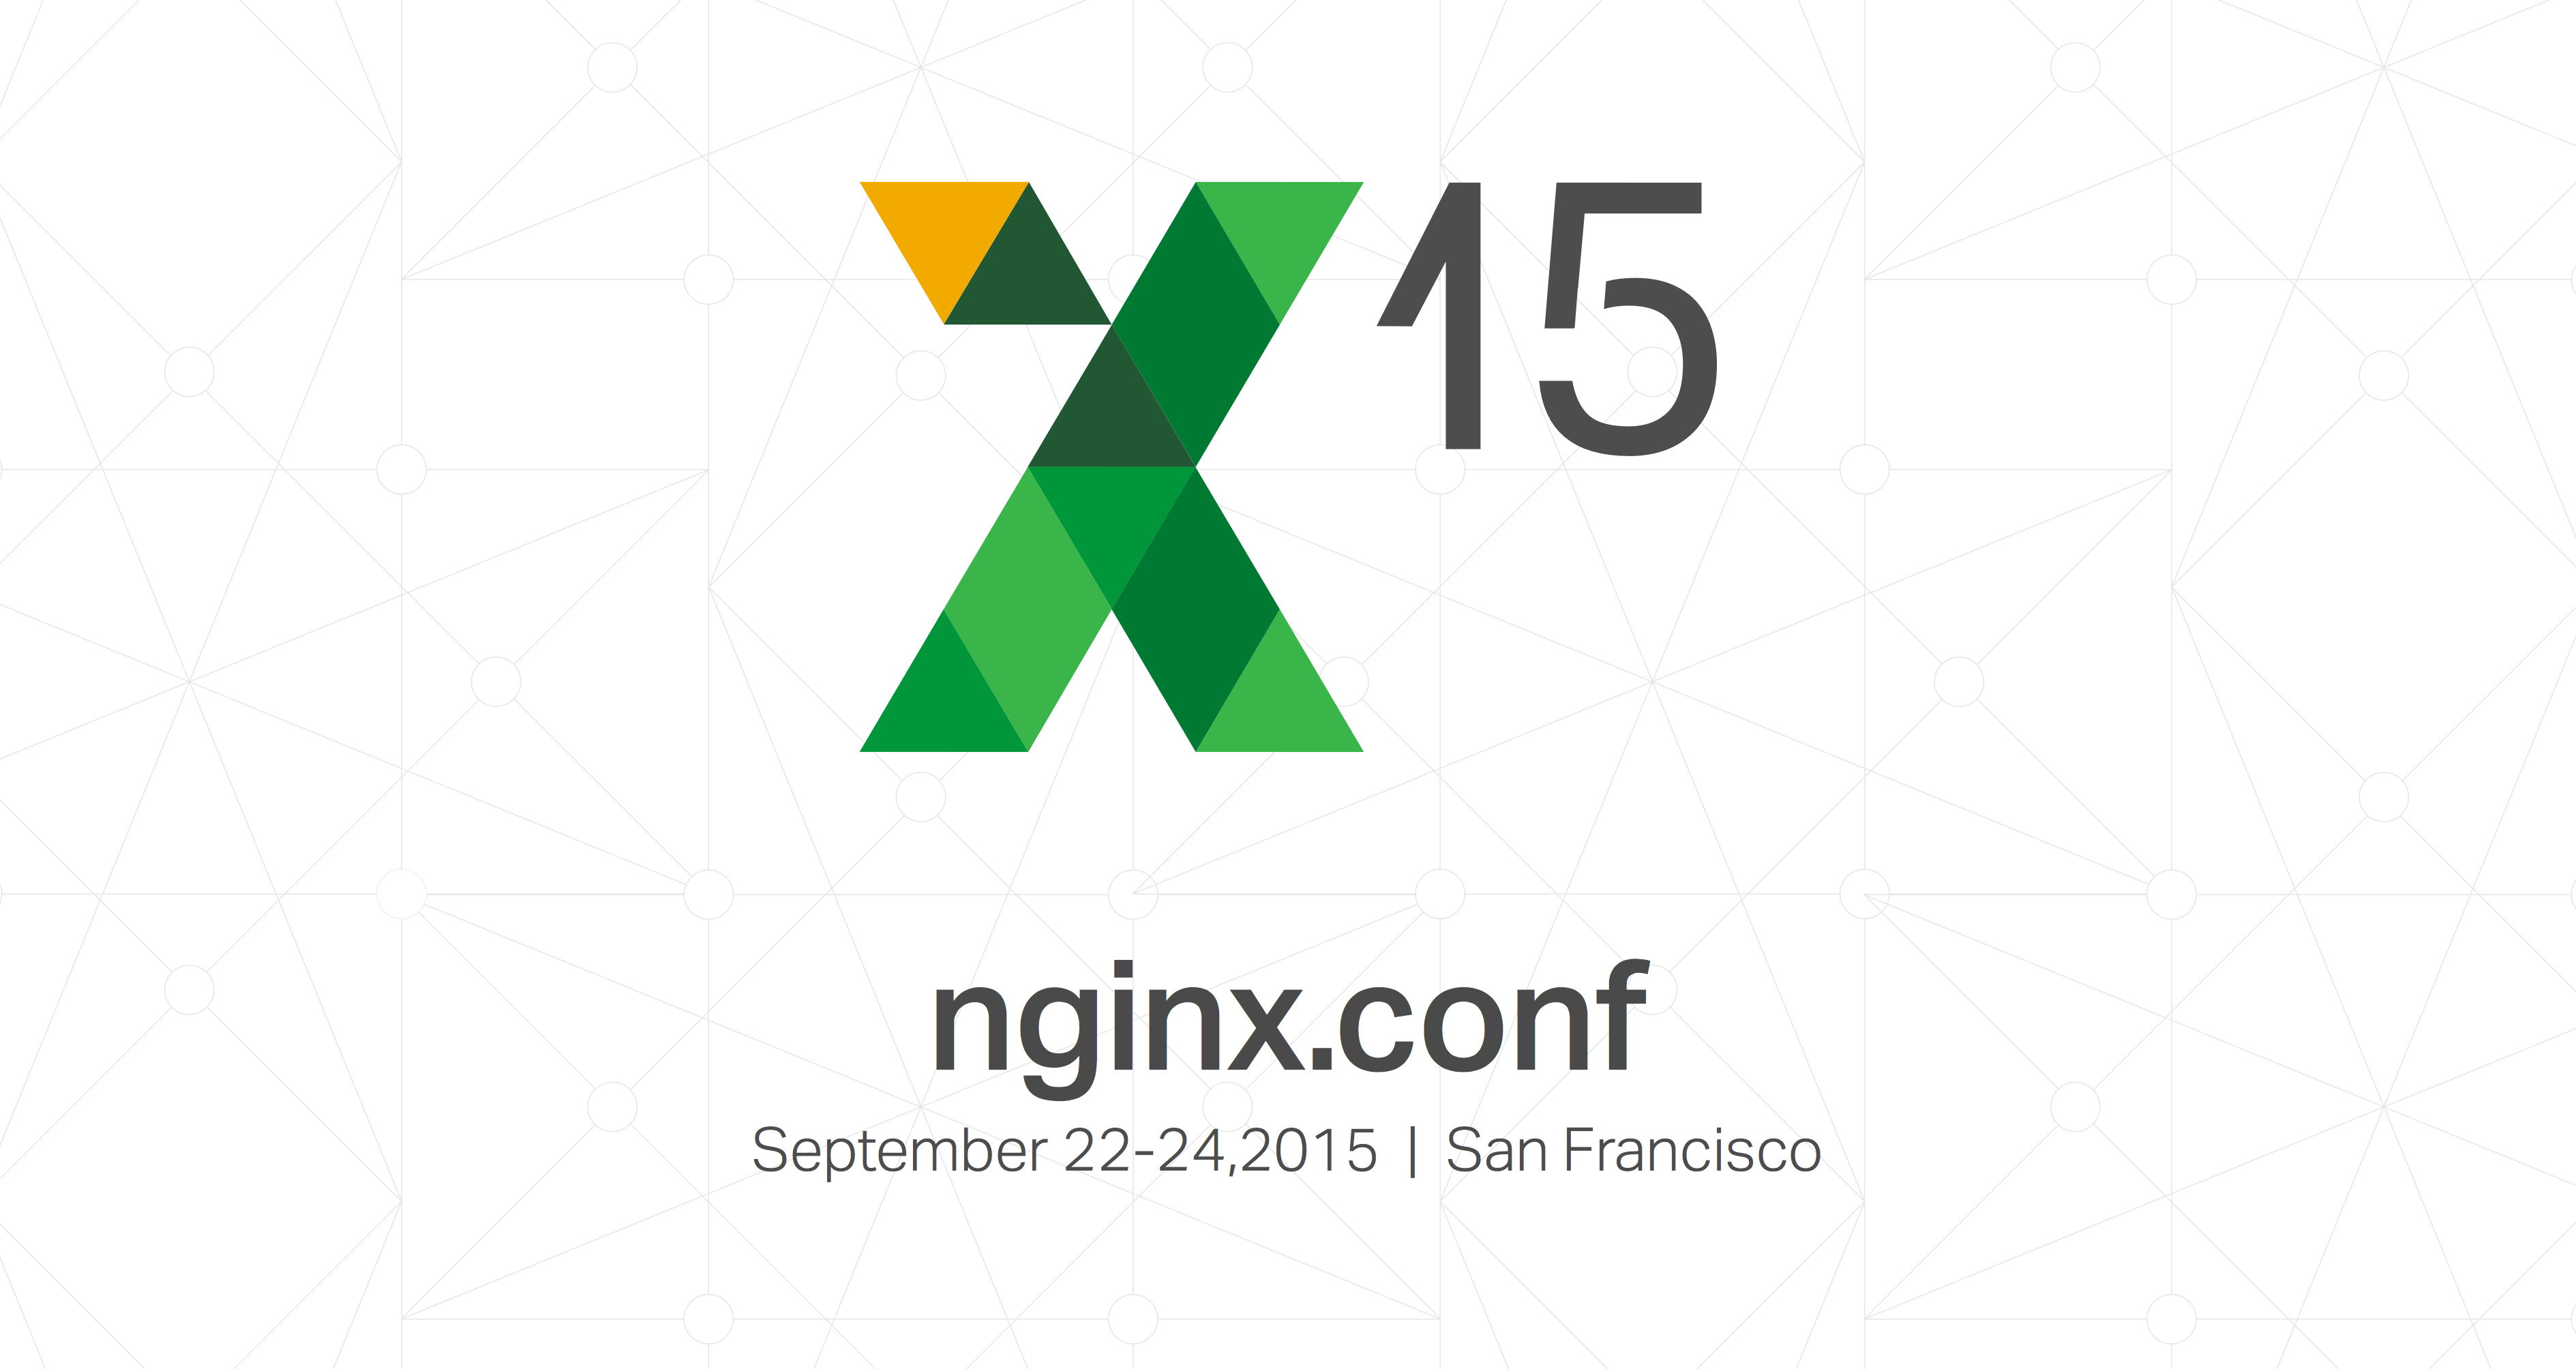 nginx.conf 2015 date location San Francisco September 22-24